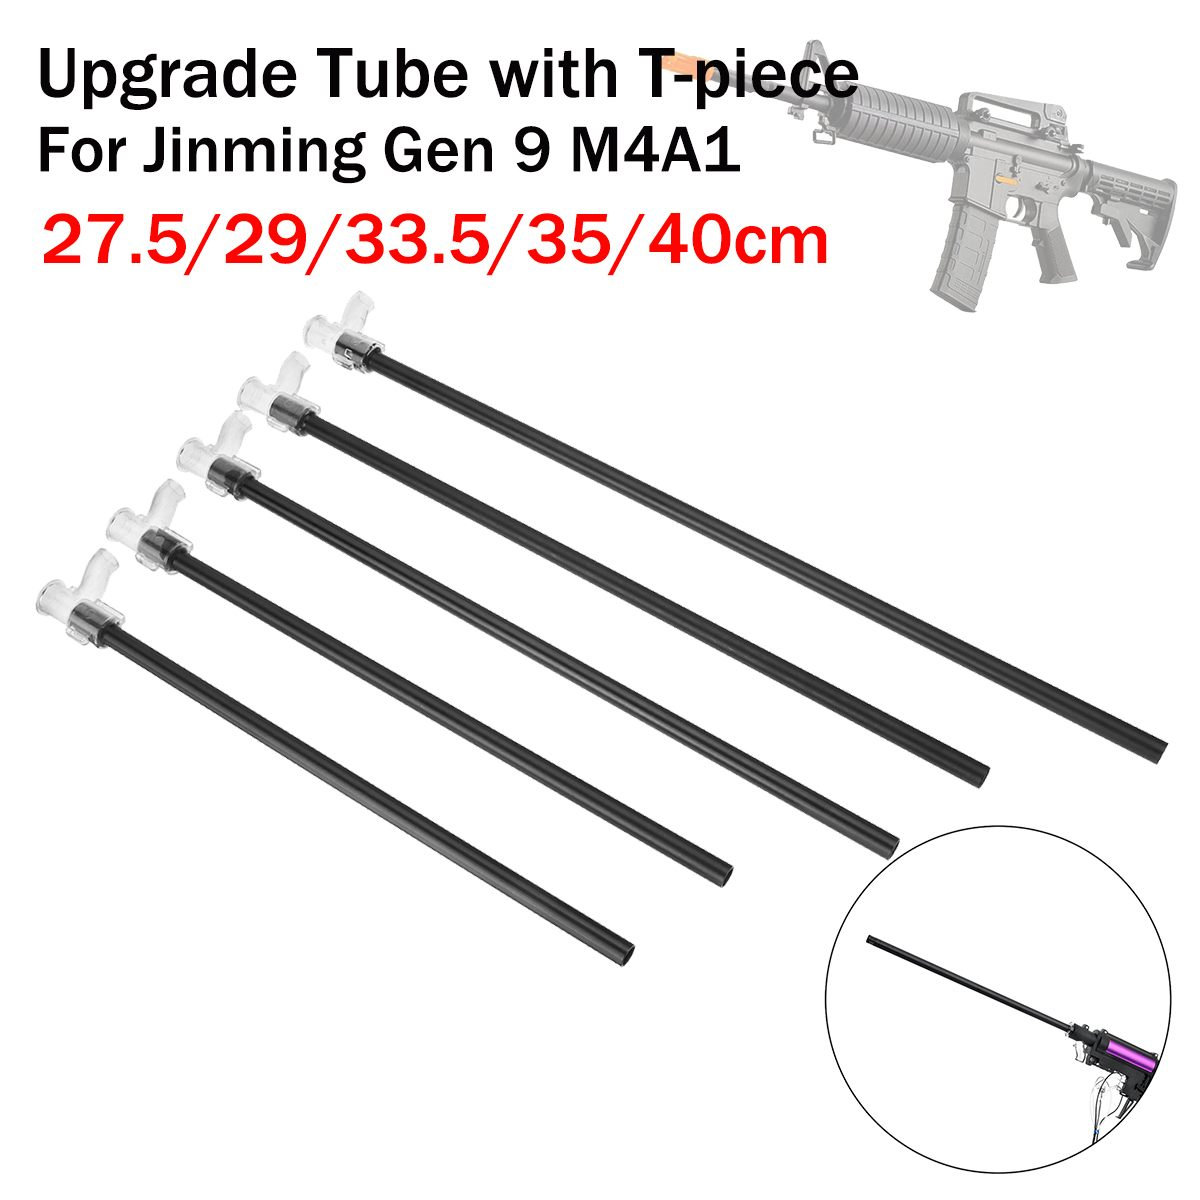 27.5/29/33.5/35/40cm Upgrade Tube+T-piece Gel Ball For Jinming Gen 9 For M4A1 Chirdren Toy Accessory